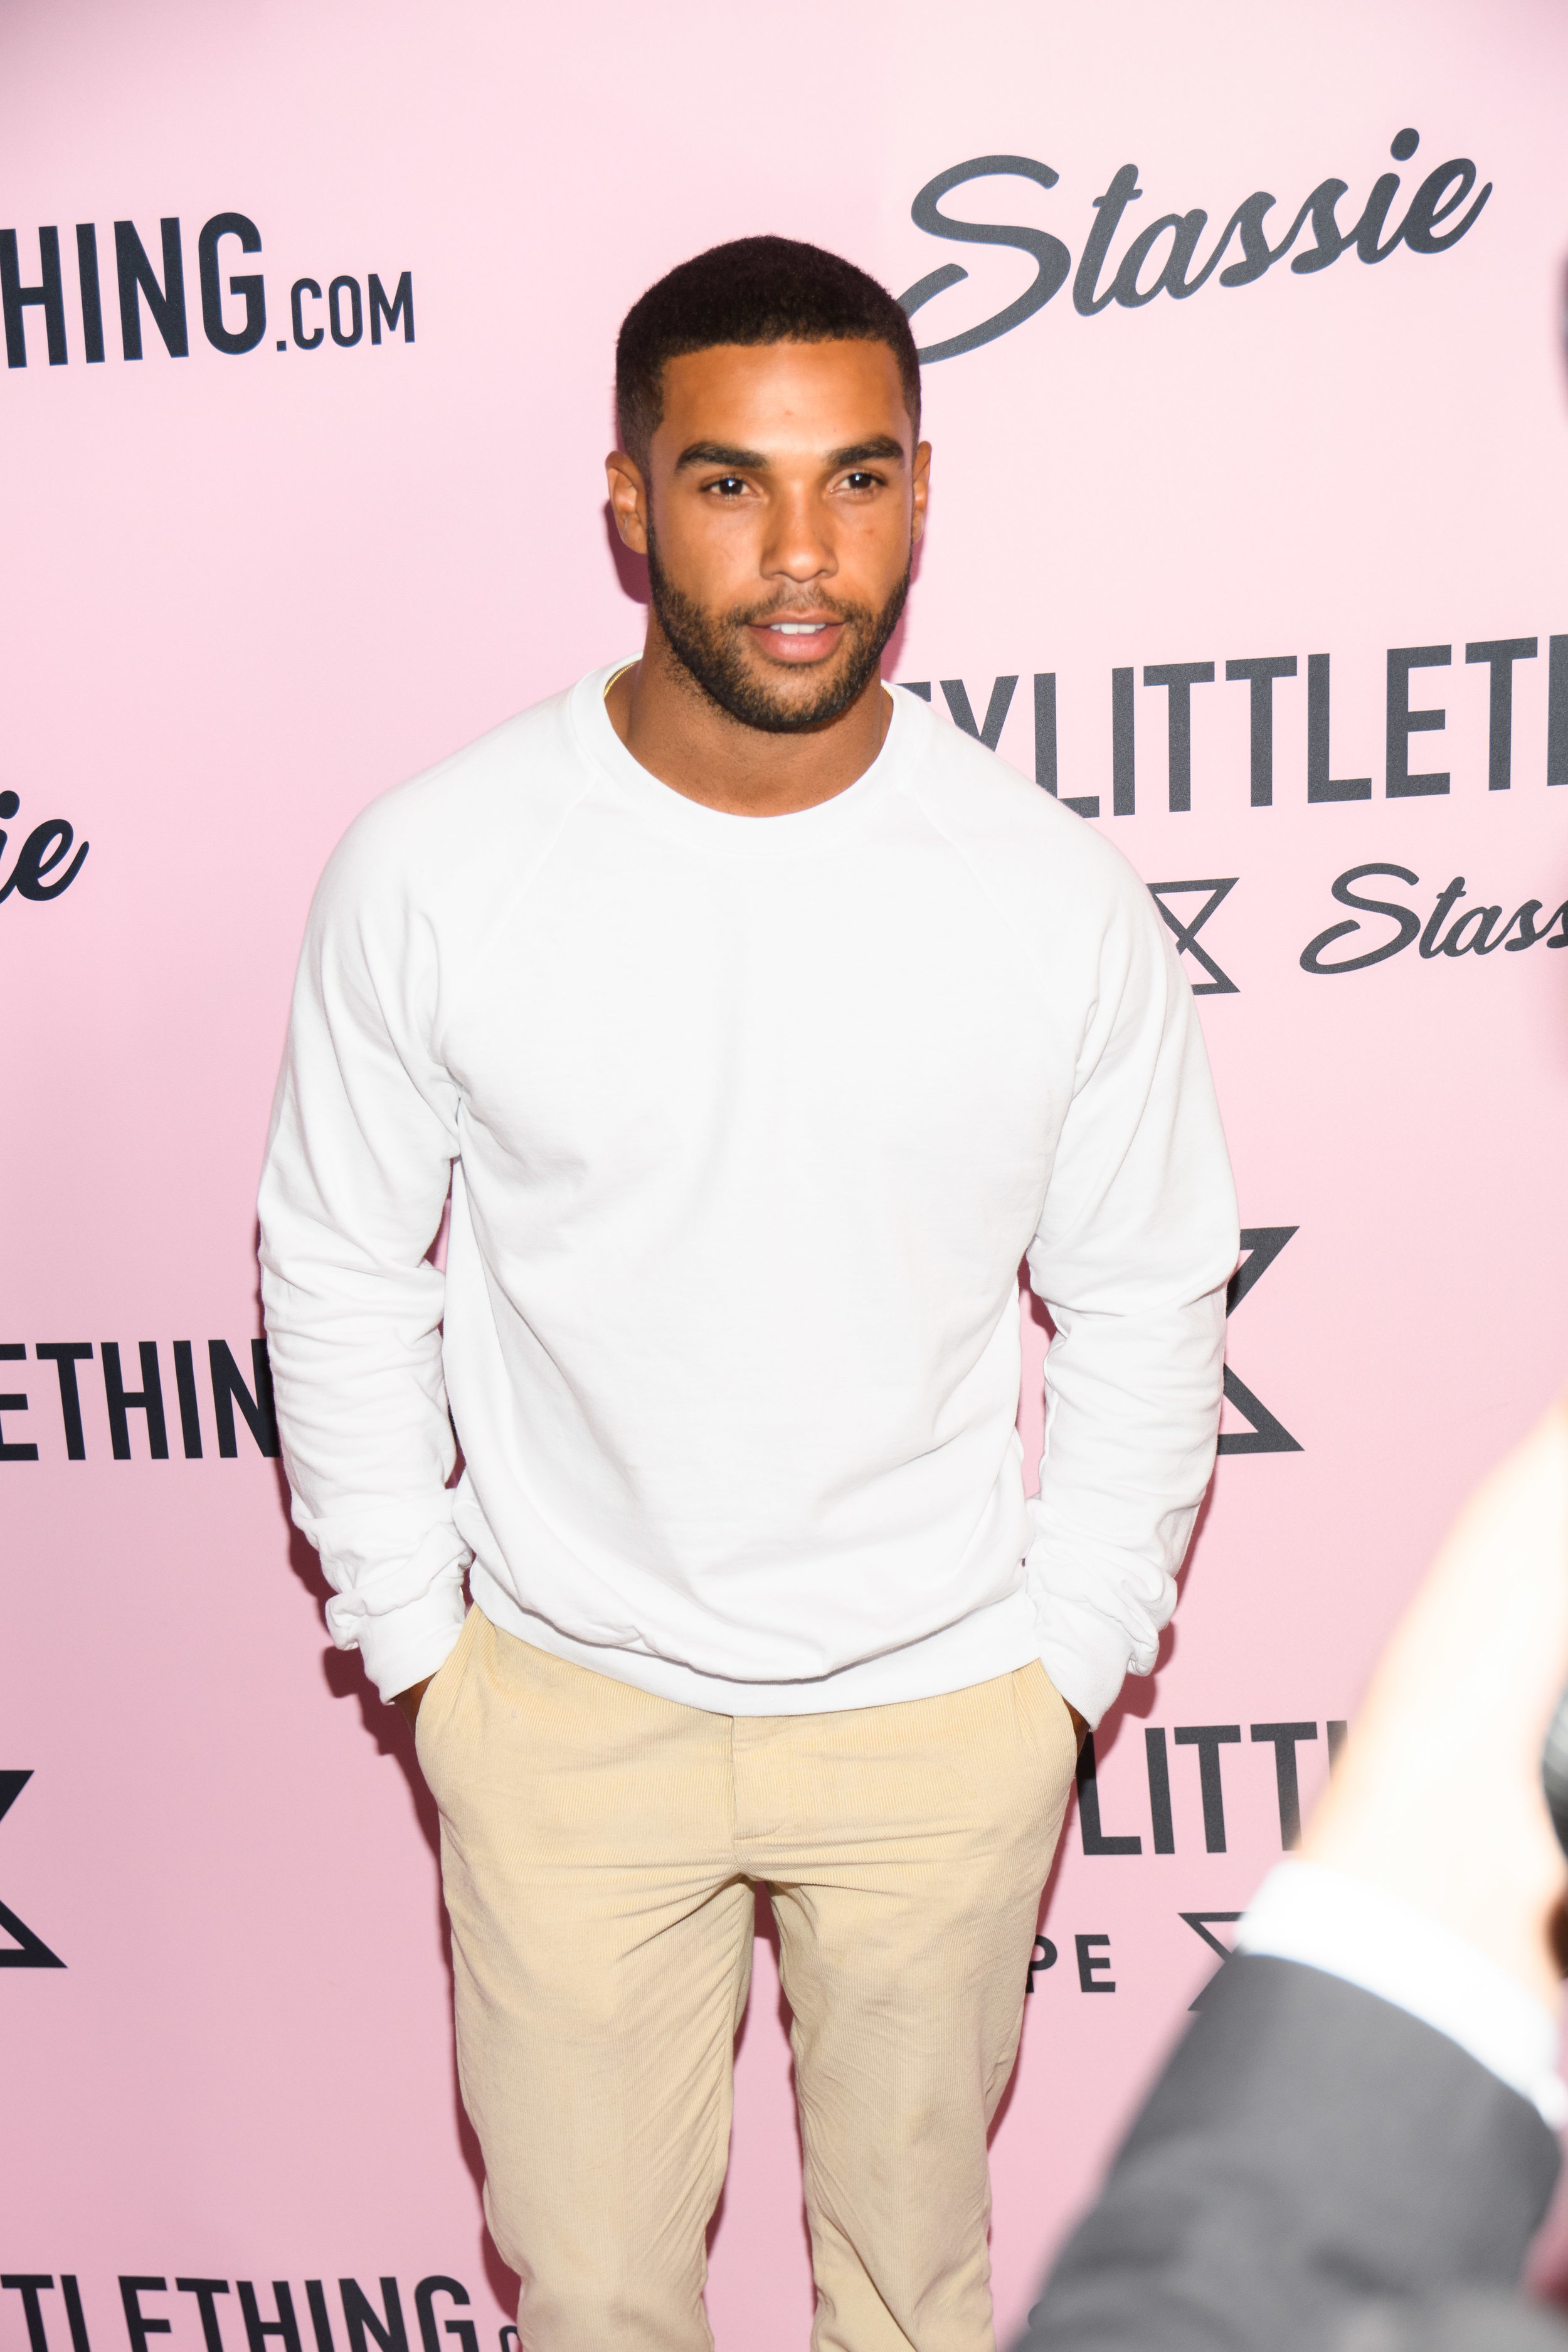 PrettyLittleThing New PLT Shape Collection with Stassie Celebrity Launch Party actor Lucien Laviscount.jpg